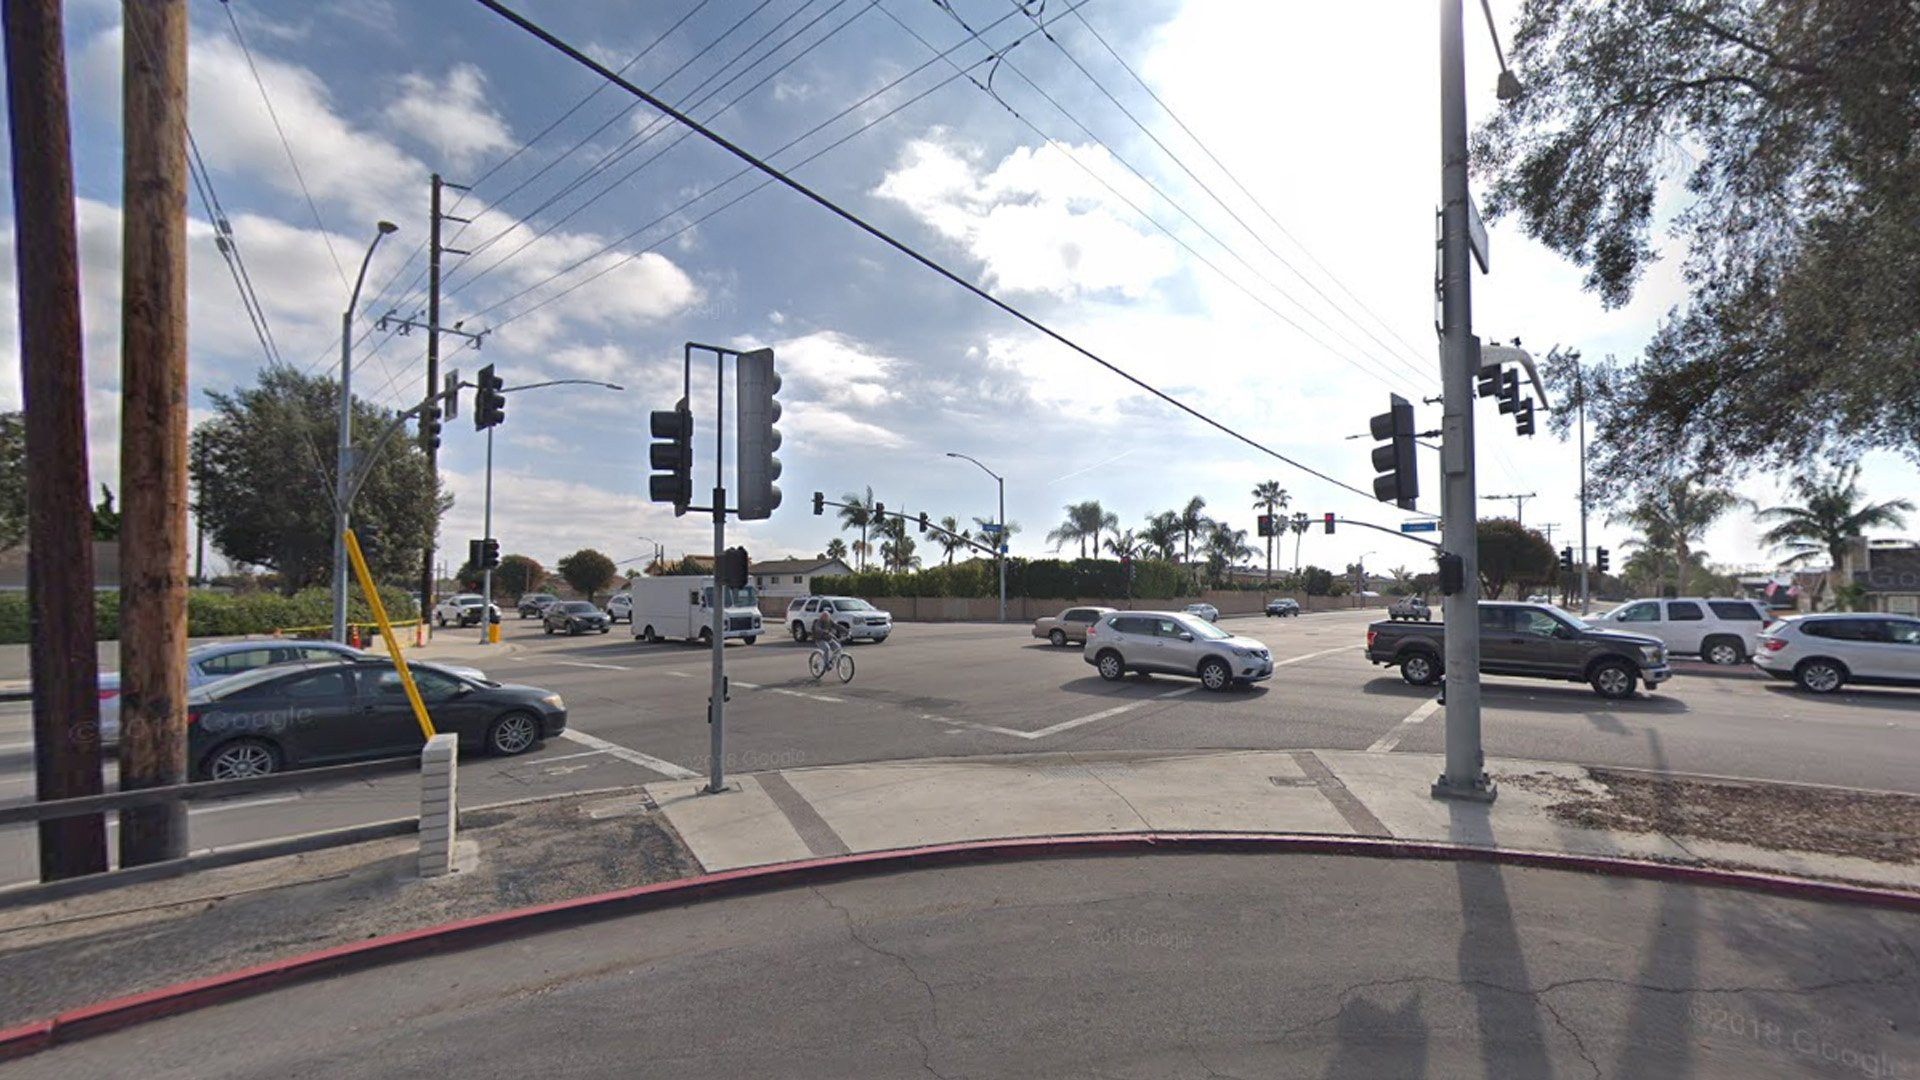 The area of Adams Avenue and Bushard Street in Huntington Beach is seen in an image from Google Maps.